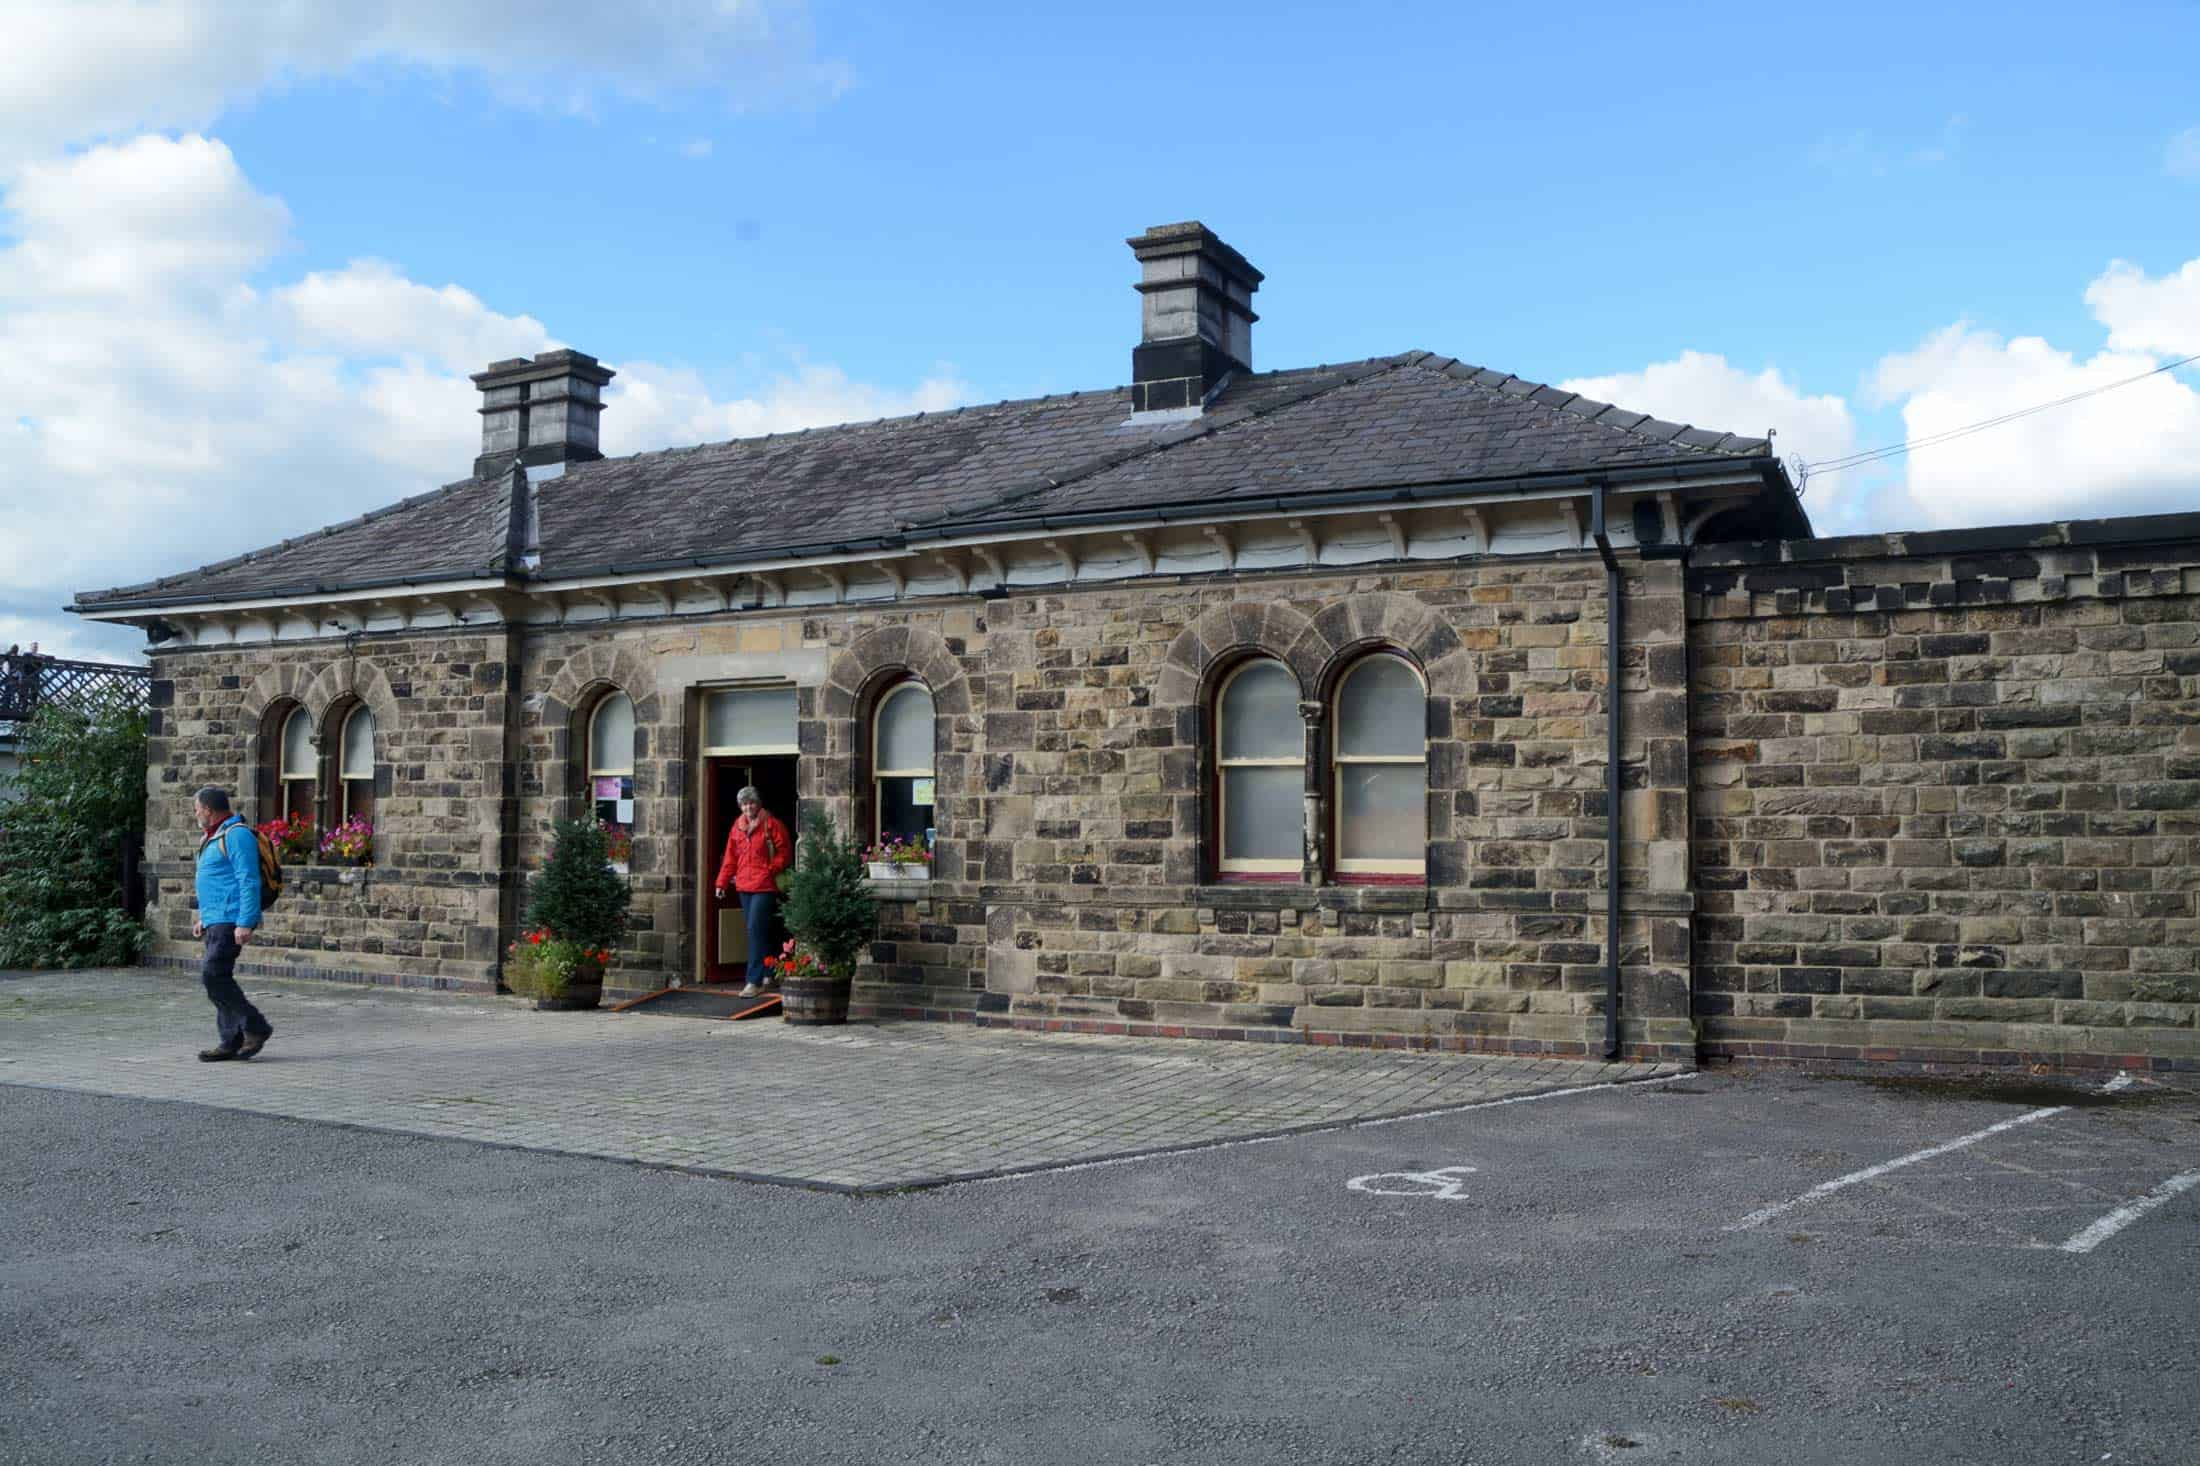 Butterley Station